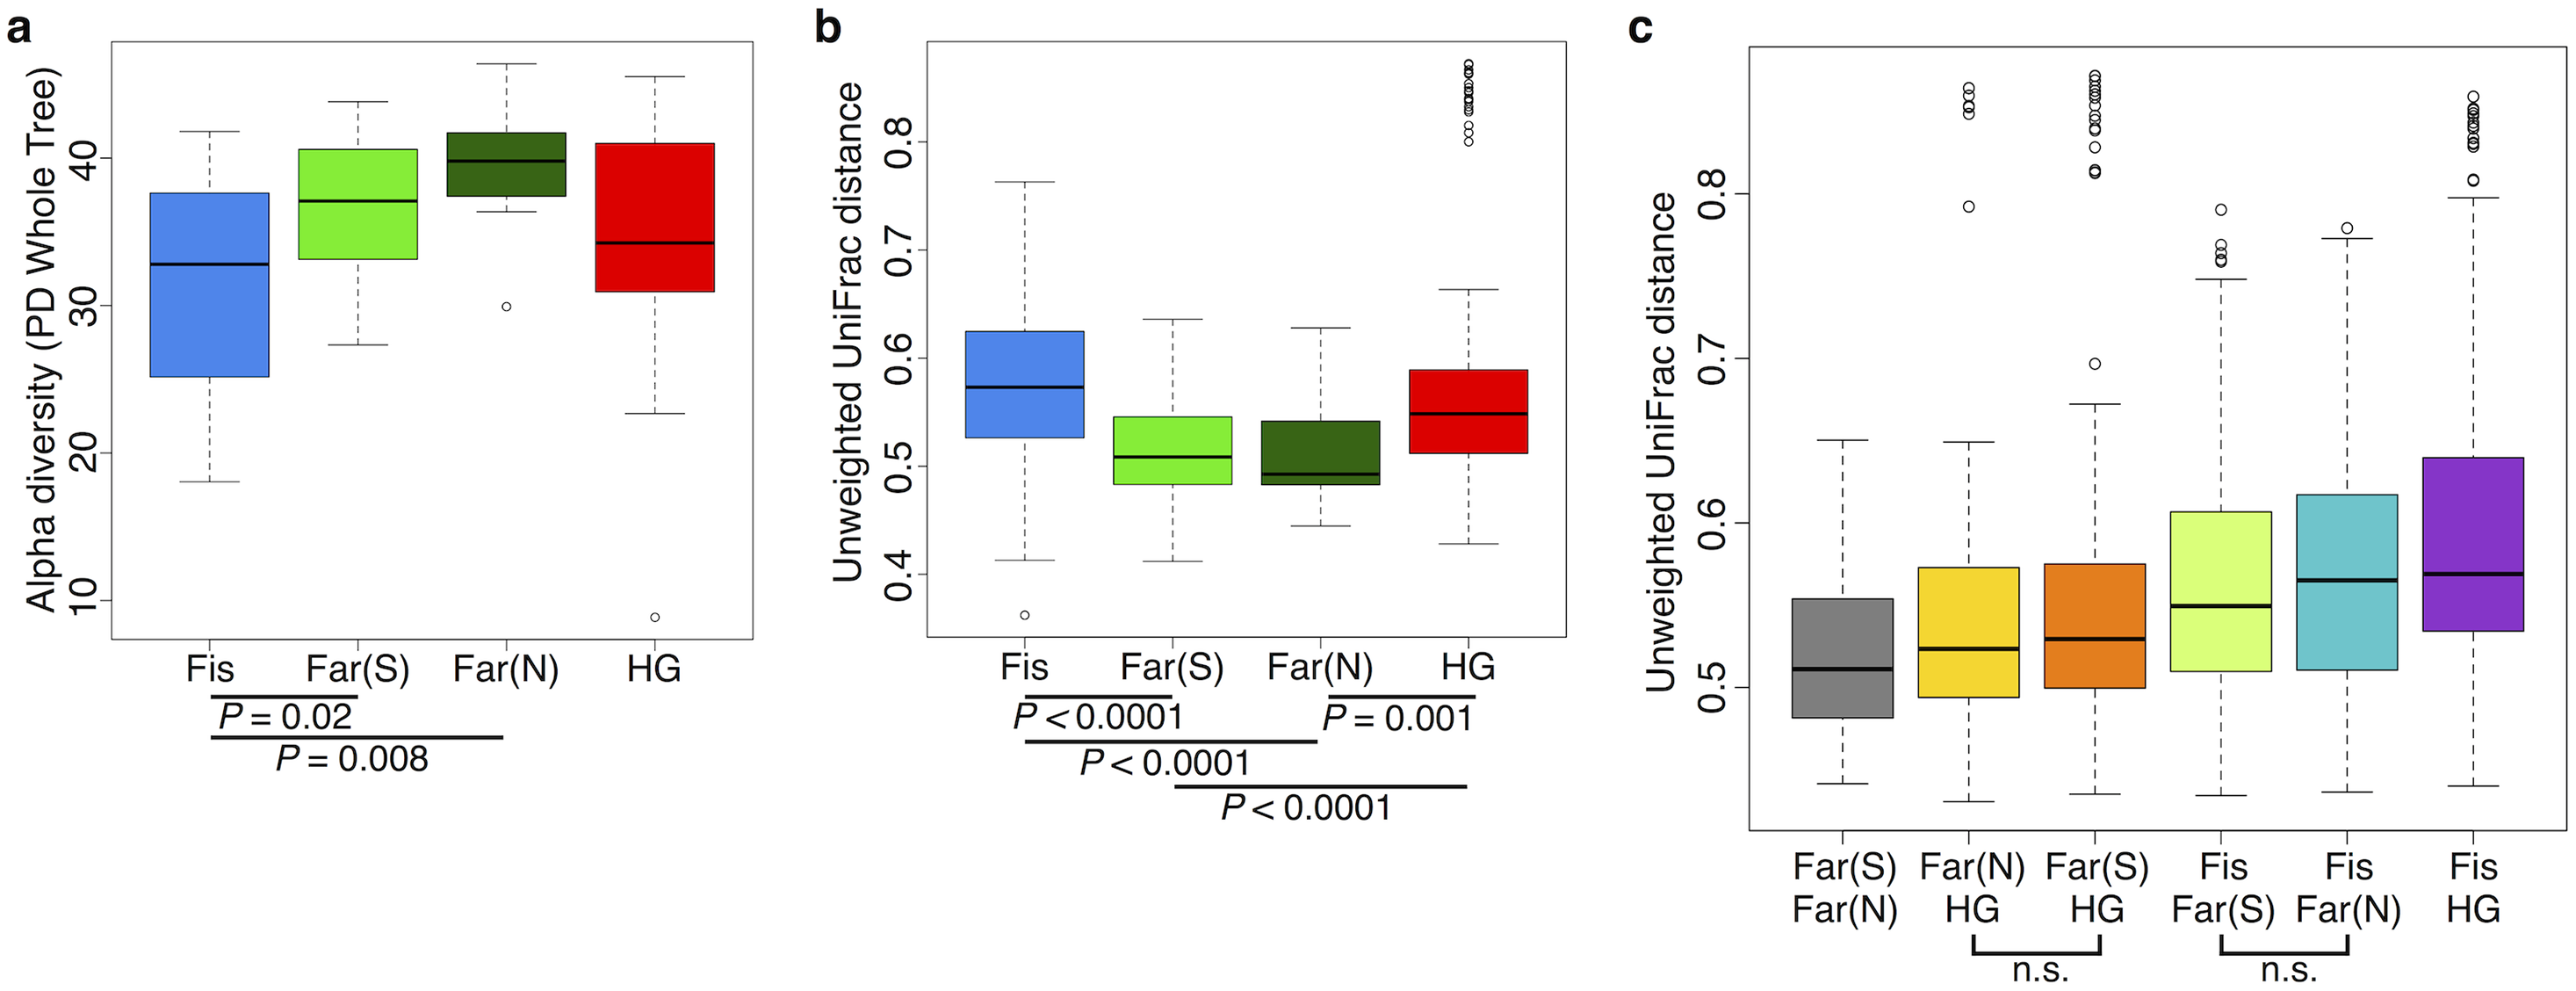 Comparison of the diversity of gut microbiomes of individuals across subsistence (a) Alpha diversity based on the phylogenetic metric, phylogenetic distance (PD) whole tree.